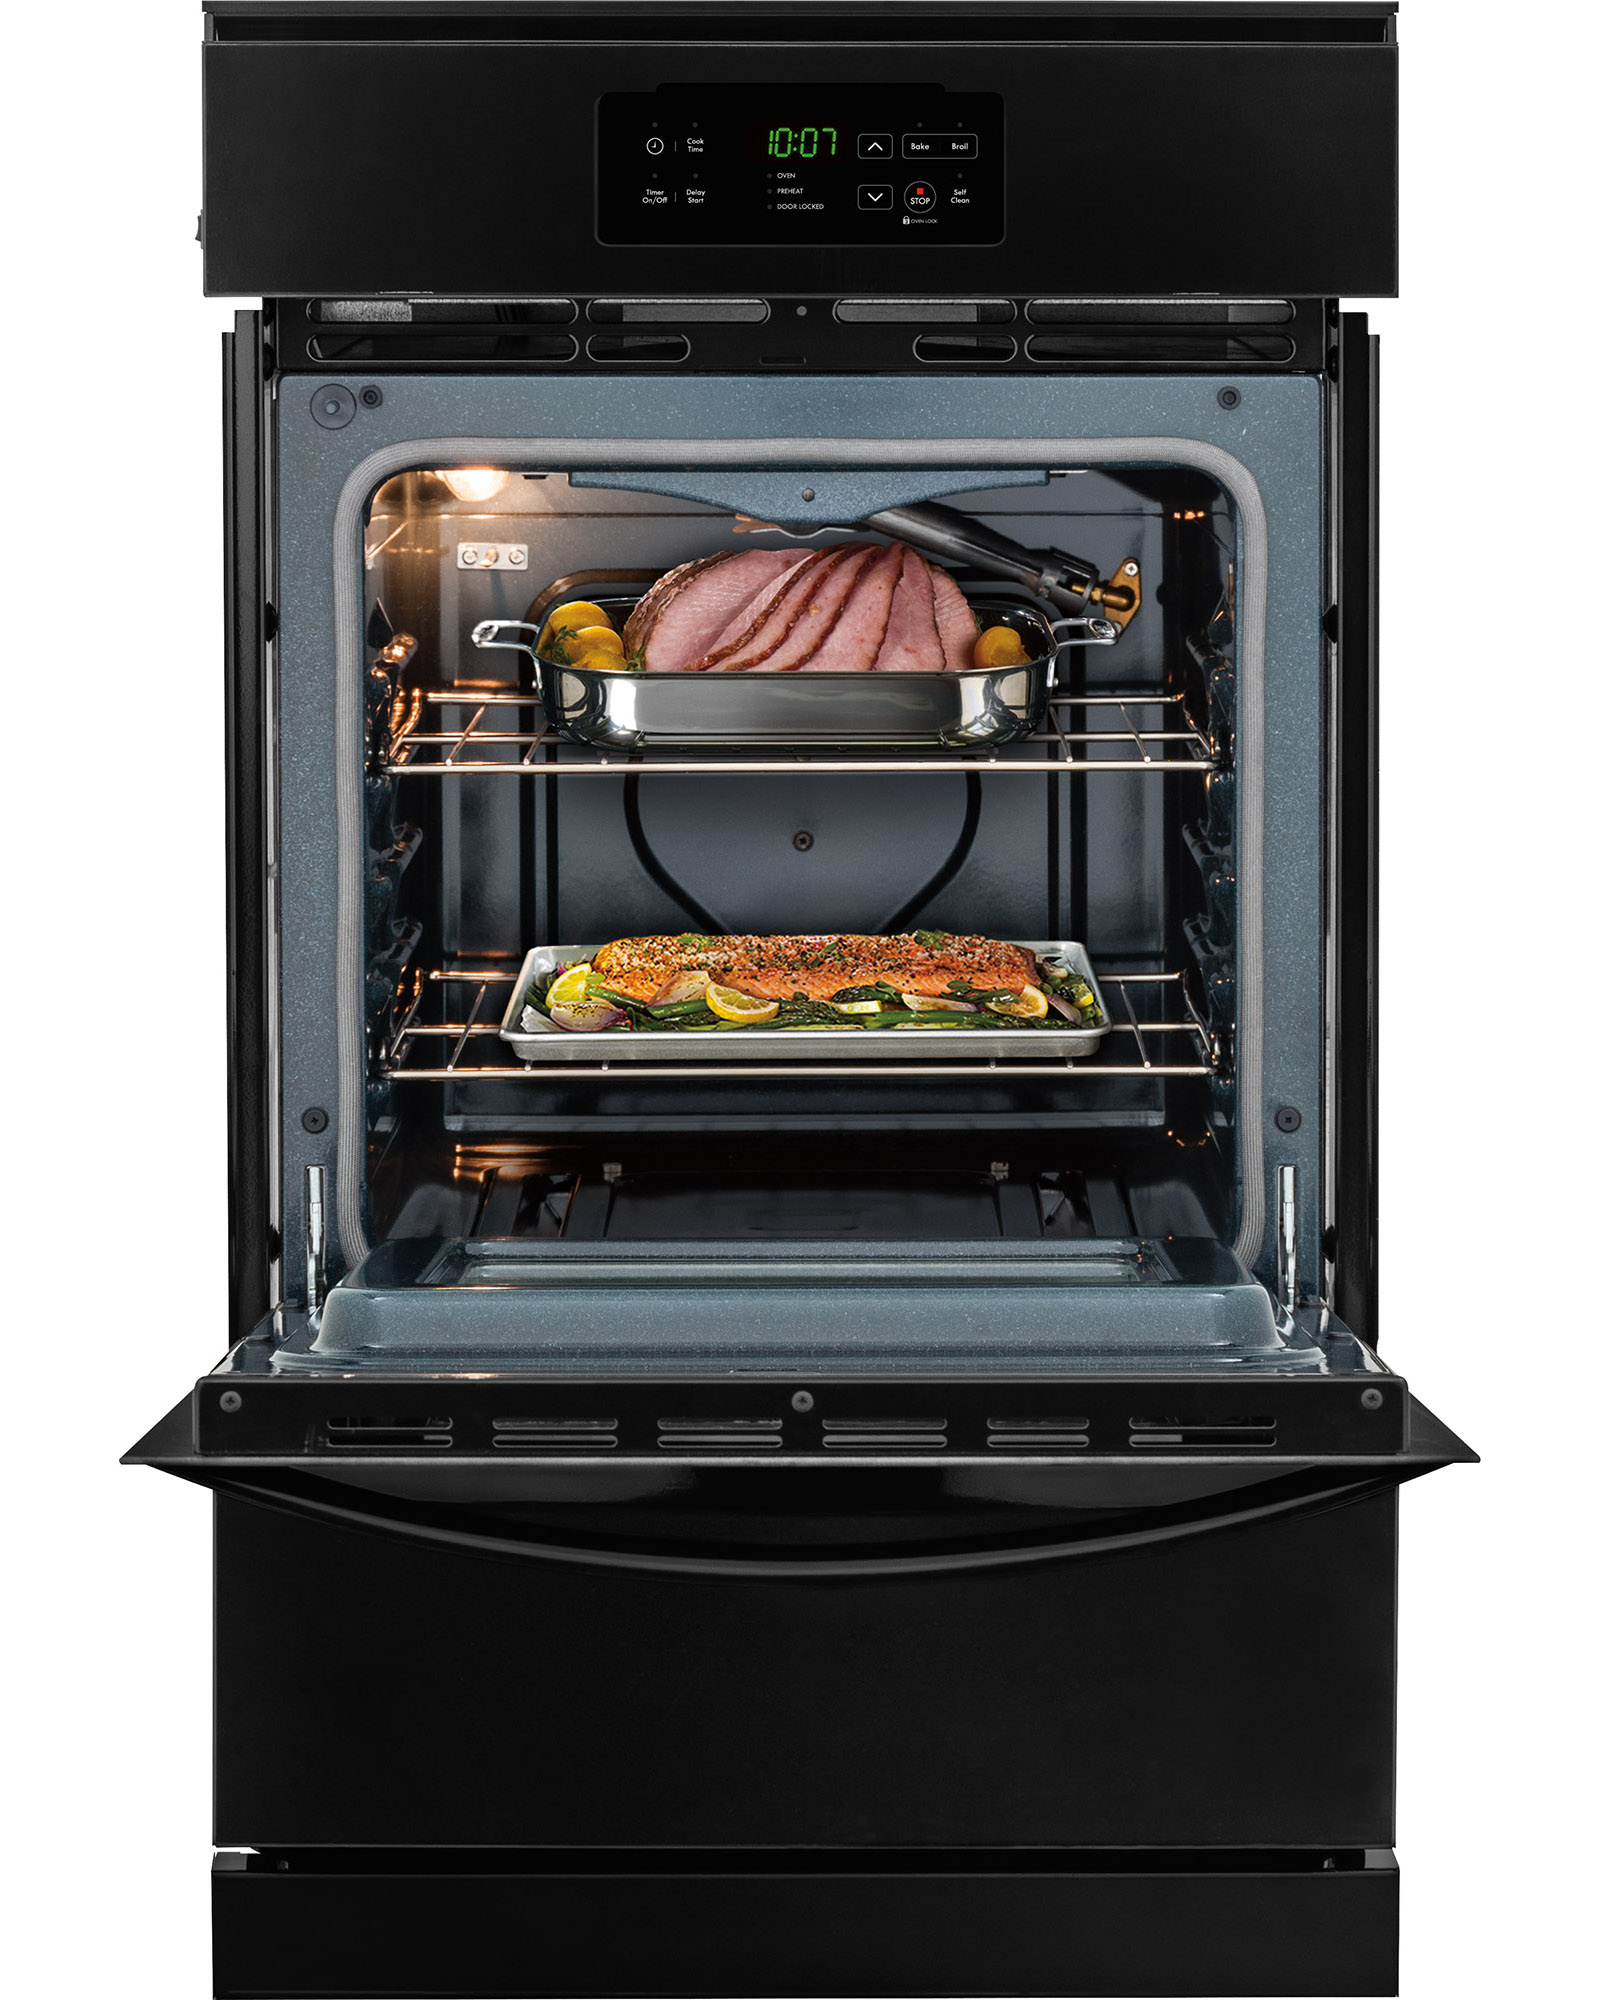 "Kenmore 40309 24"" Gas Wall Oven - Black"